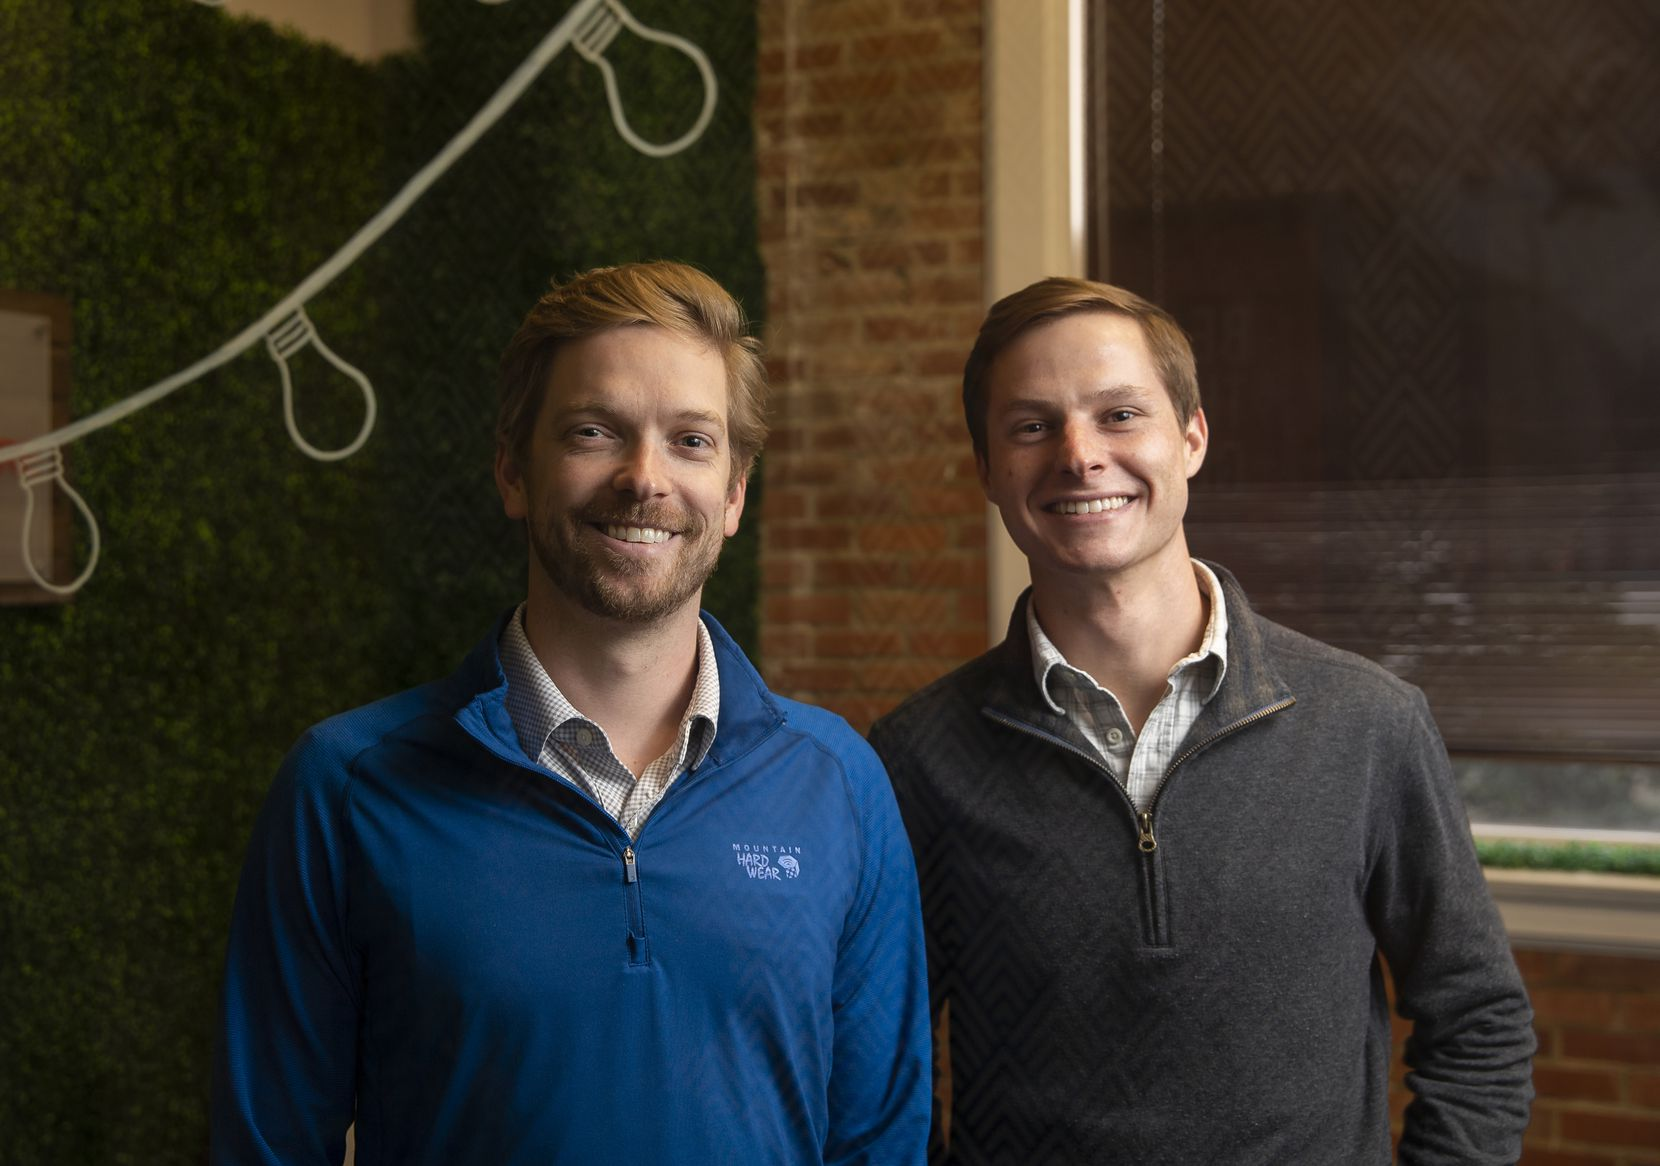 Dallas startup InspireMore wants a 'righteous disruption' of mainstream media that'll make you smile – The Dallas Morning News